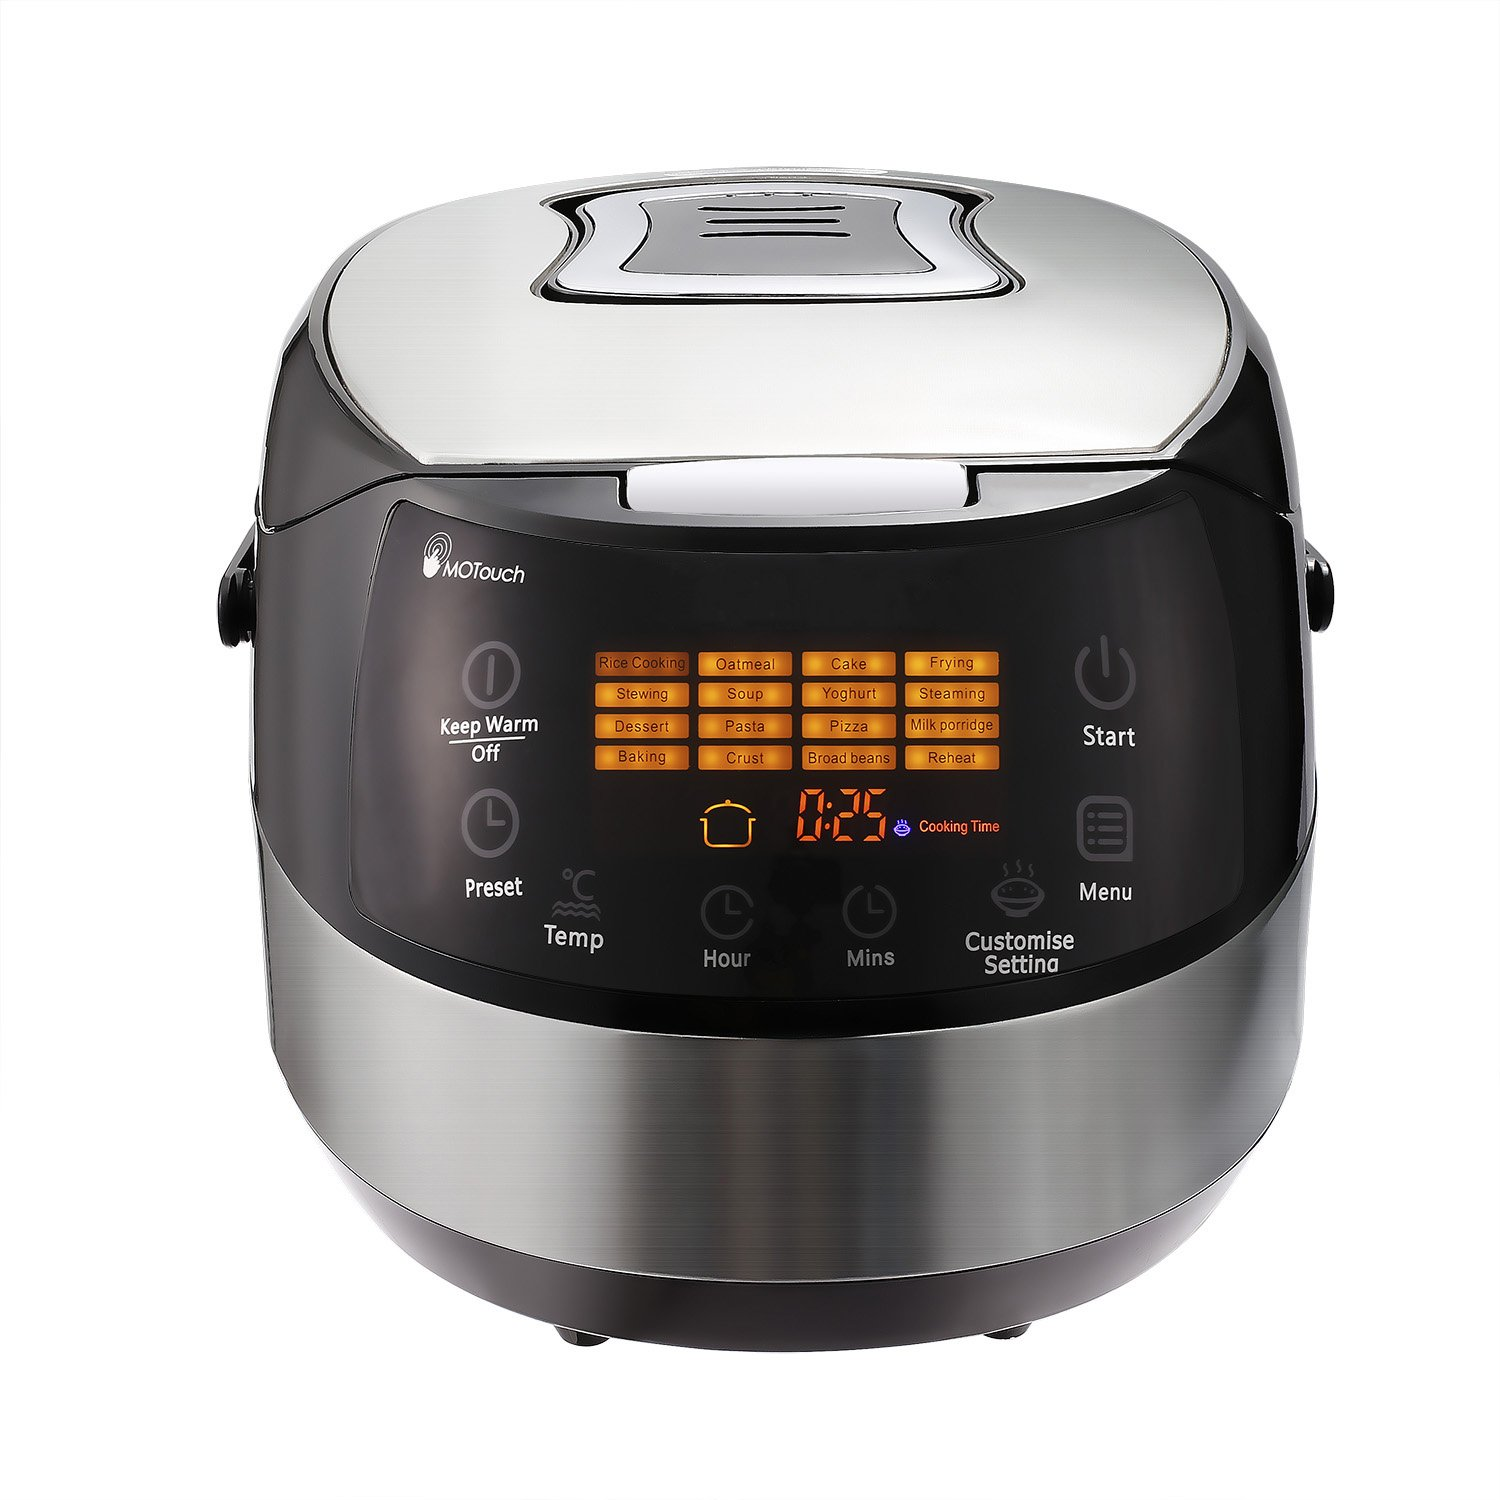 MeyKey Rice Cooker,Stainless Steel Multi-Cooker and Food Steamer,Digital Cool-Touch Slow Cooker,6QT,860W(US STOCK) (6QT RICE COOKER)